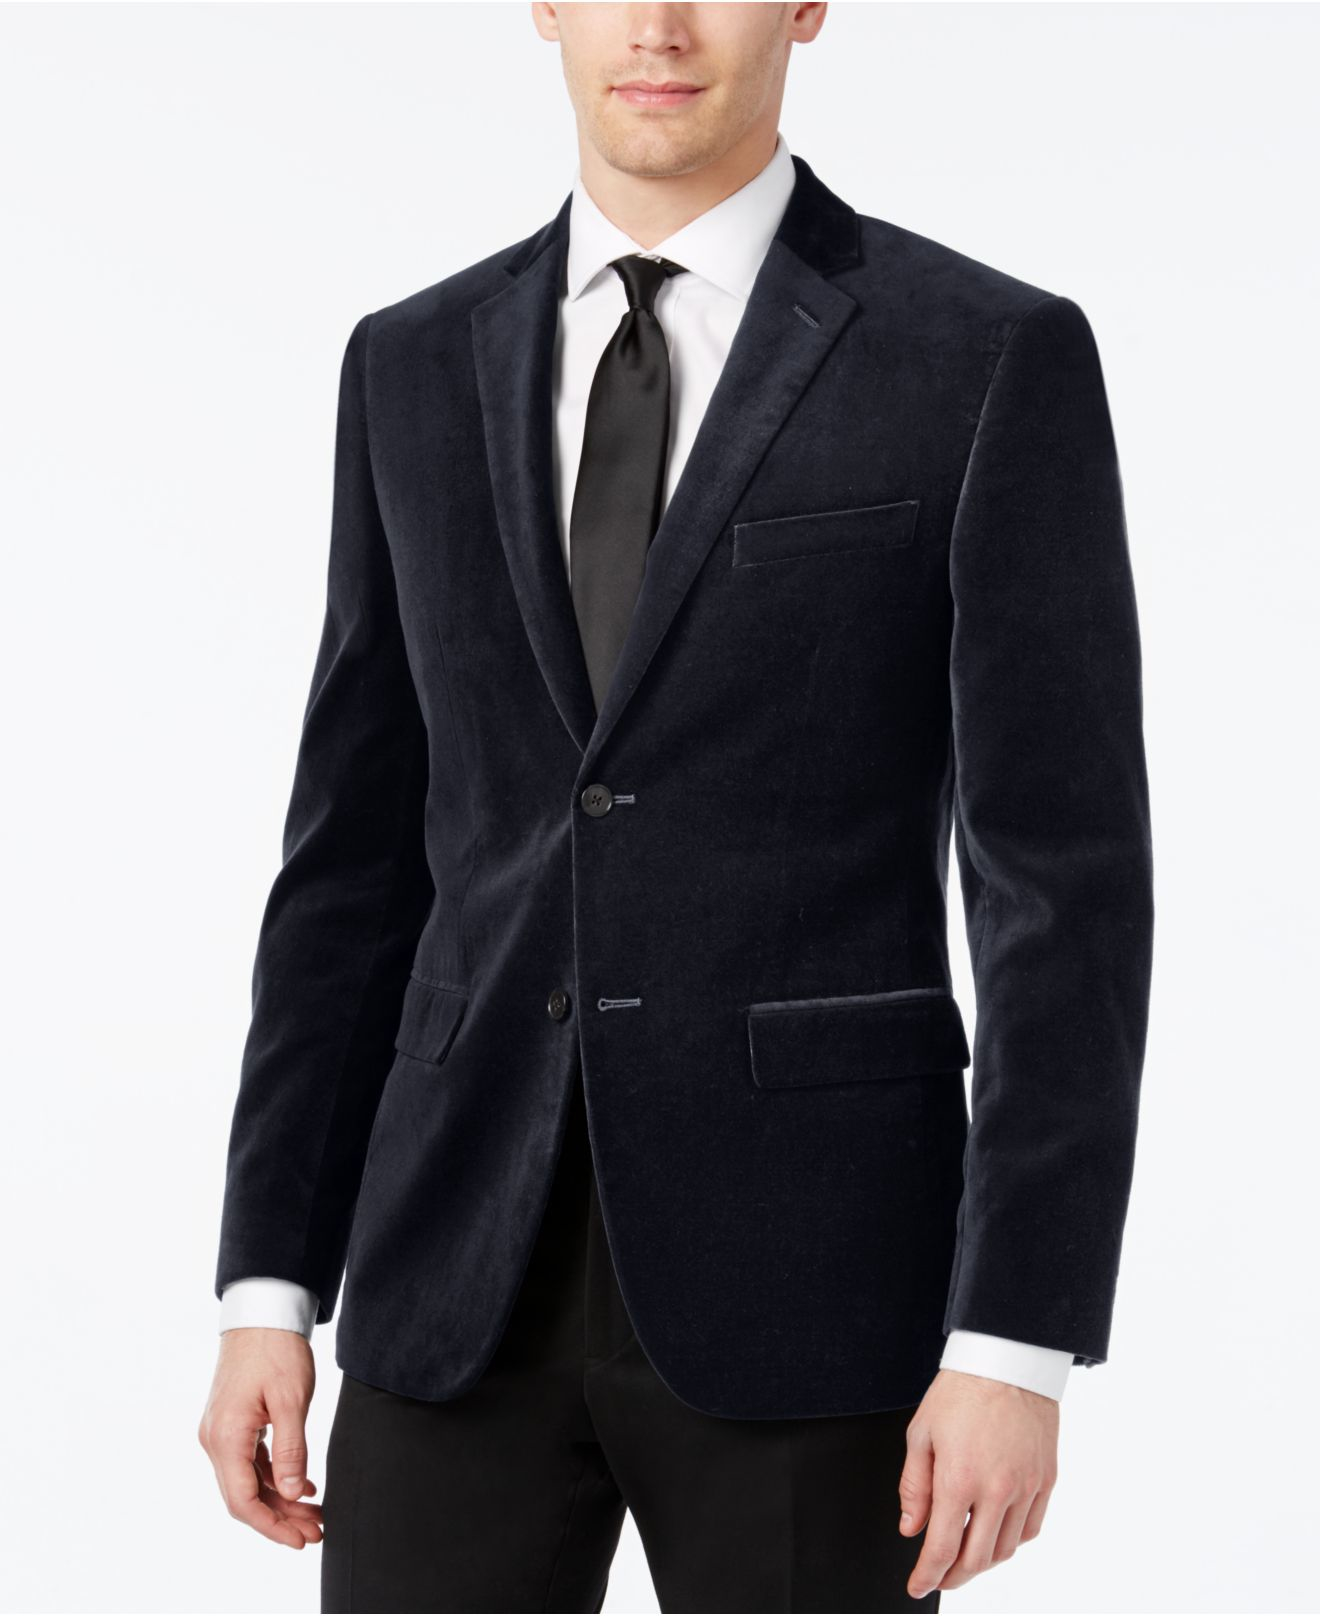 Dkny Men's Slim-Fit Basketweave Sport Coat - Blue 40L $ at macys. Relax your style in a casually sophisticated way with the supremely soft and textural hand-stitched fabric, dark-tones and patch p ockets of this tailored sport coat by Dkny. read more. See at macys. CONNEXITY.